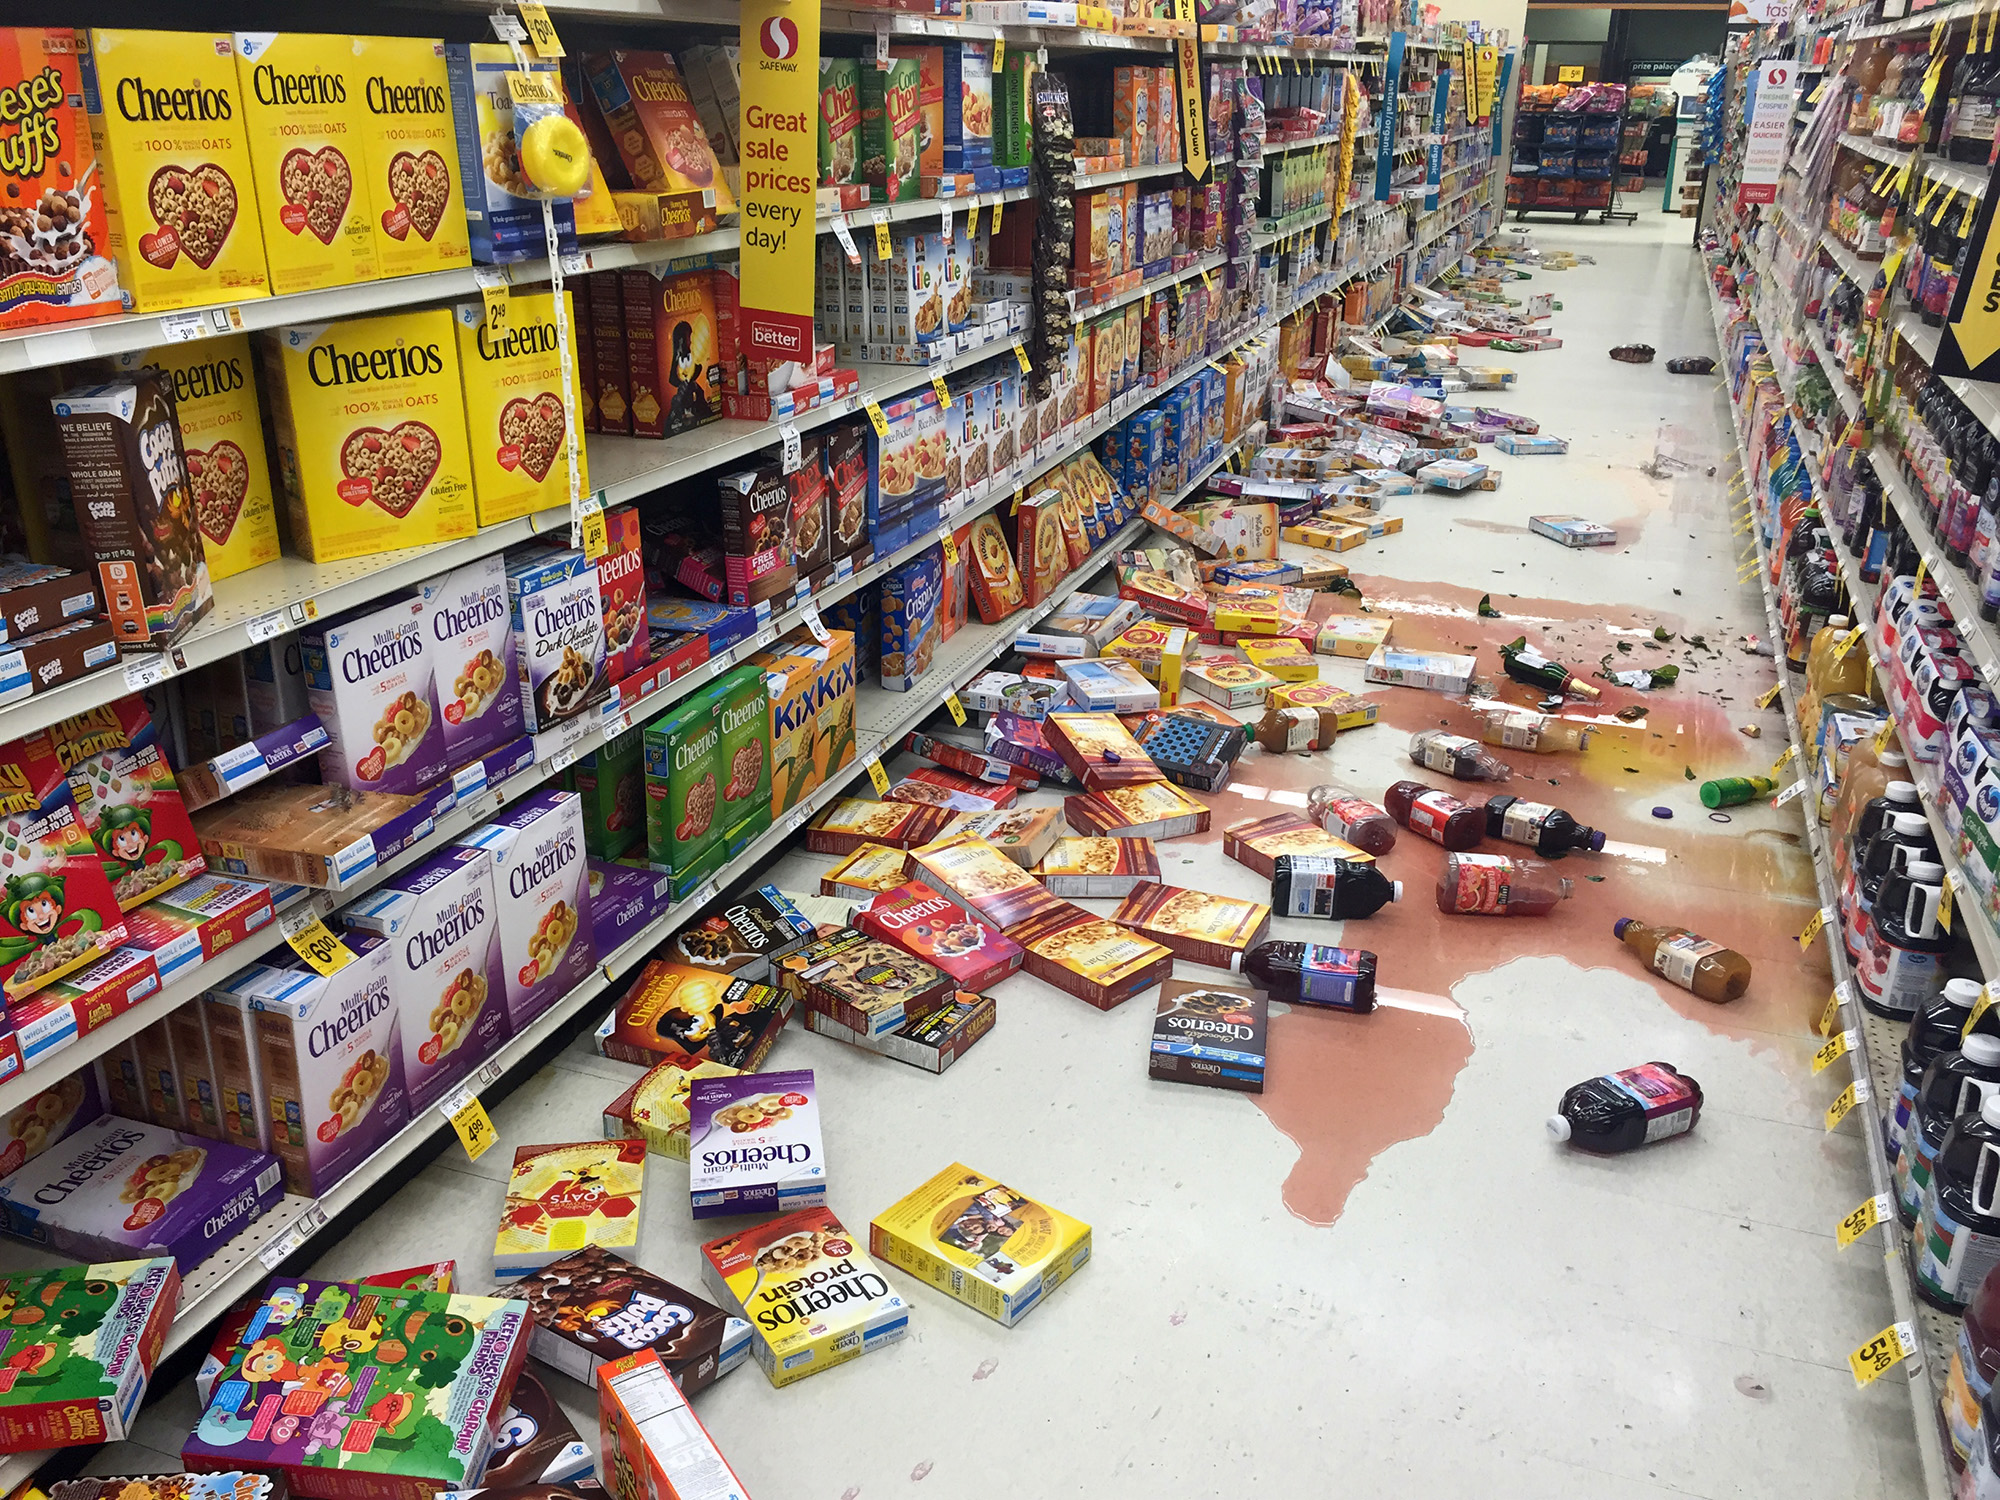 Boxes of cereal and bottles of juice lie on the floor of a Safeway grocery store following an earthquake on the Kenai Peninsula in Alaska on Jan. 24, 2016.